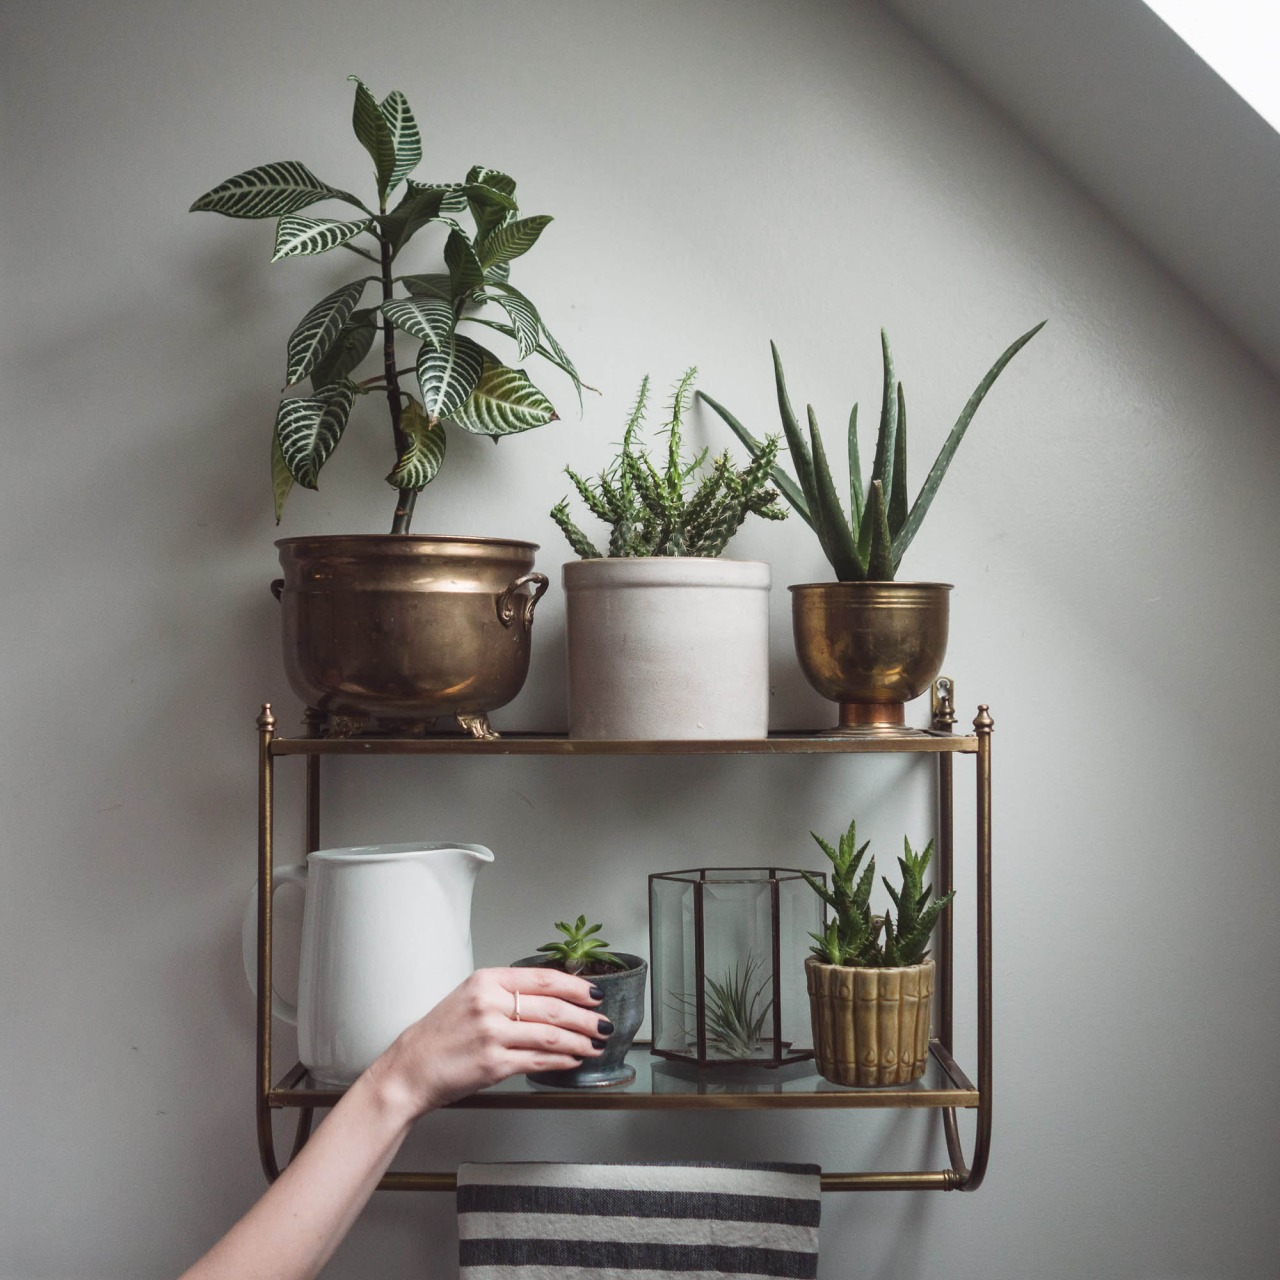 Plant Shelving Indoor 25 Indoor Garden Ideas Your No 1 Source Of Architecture